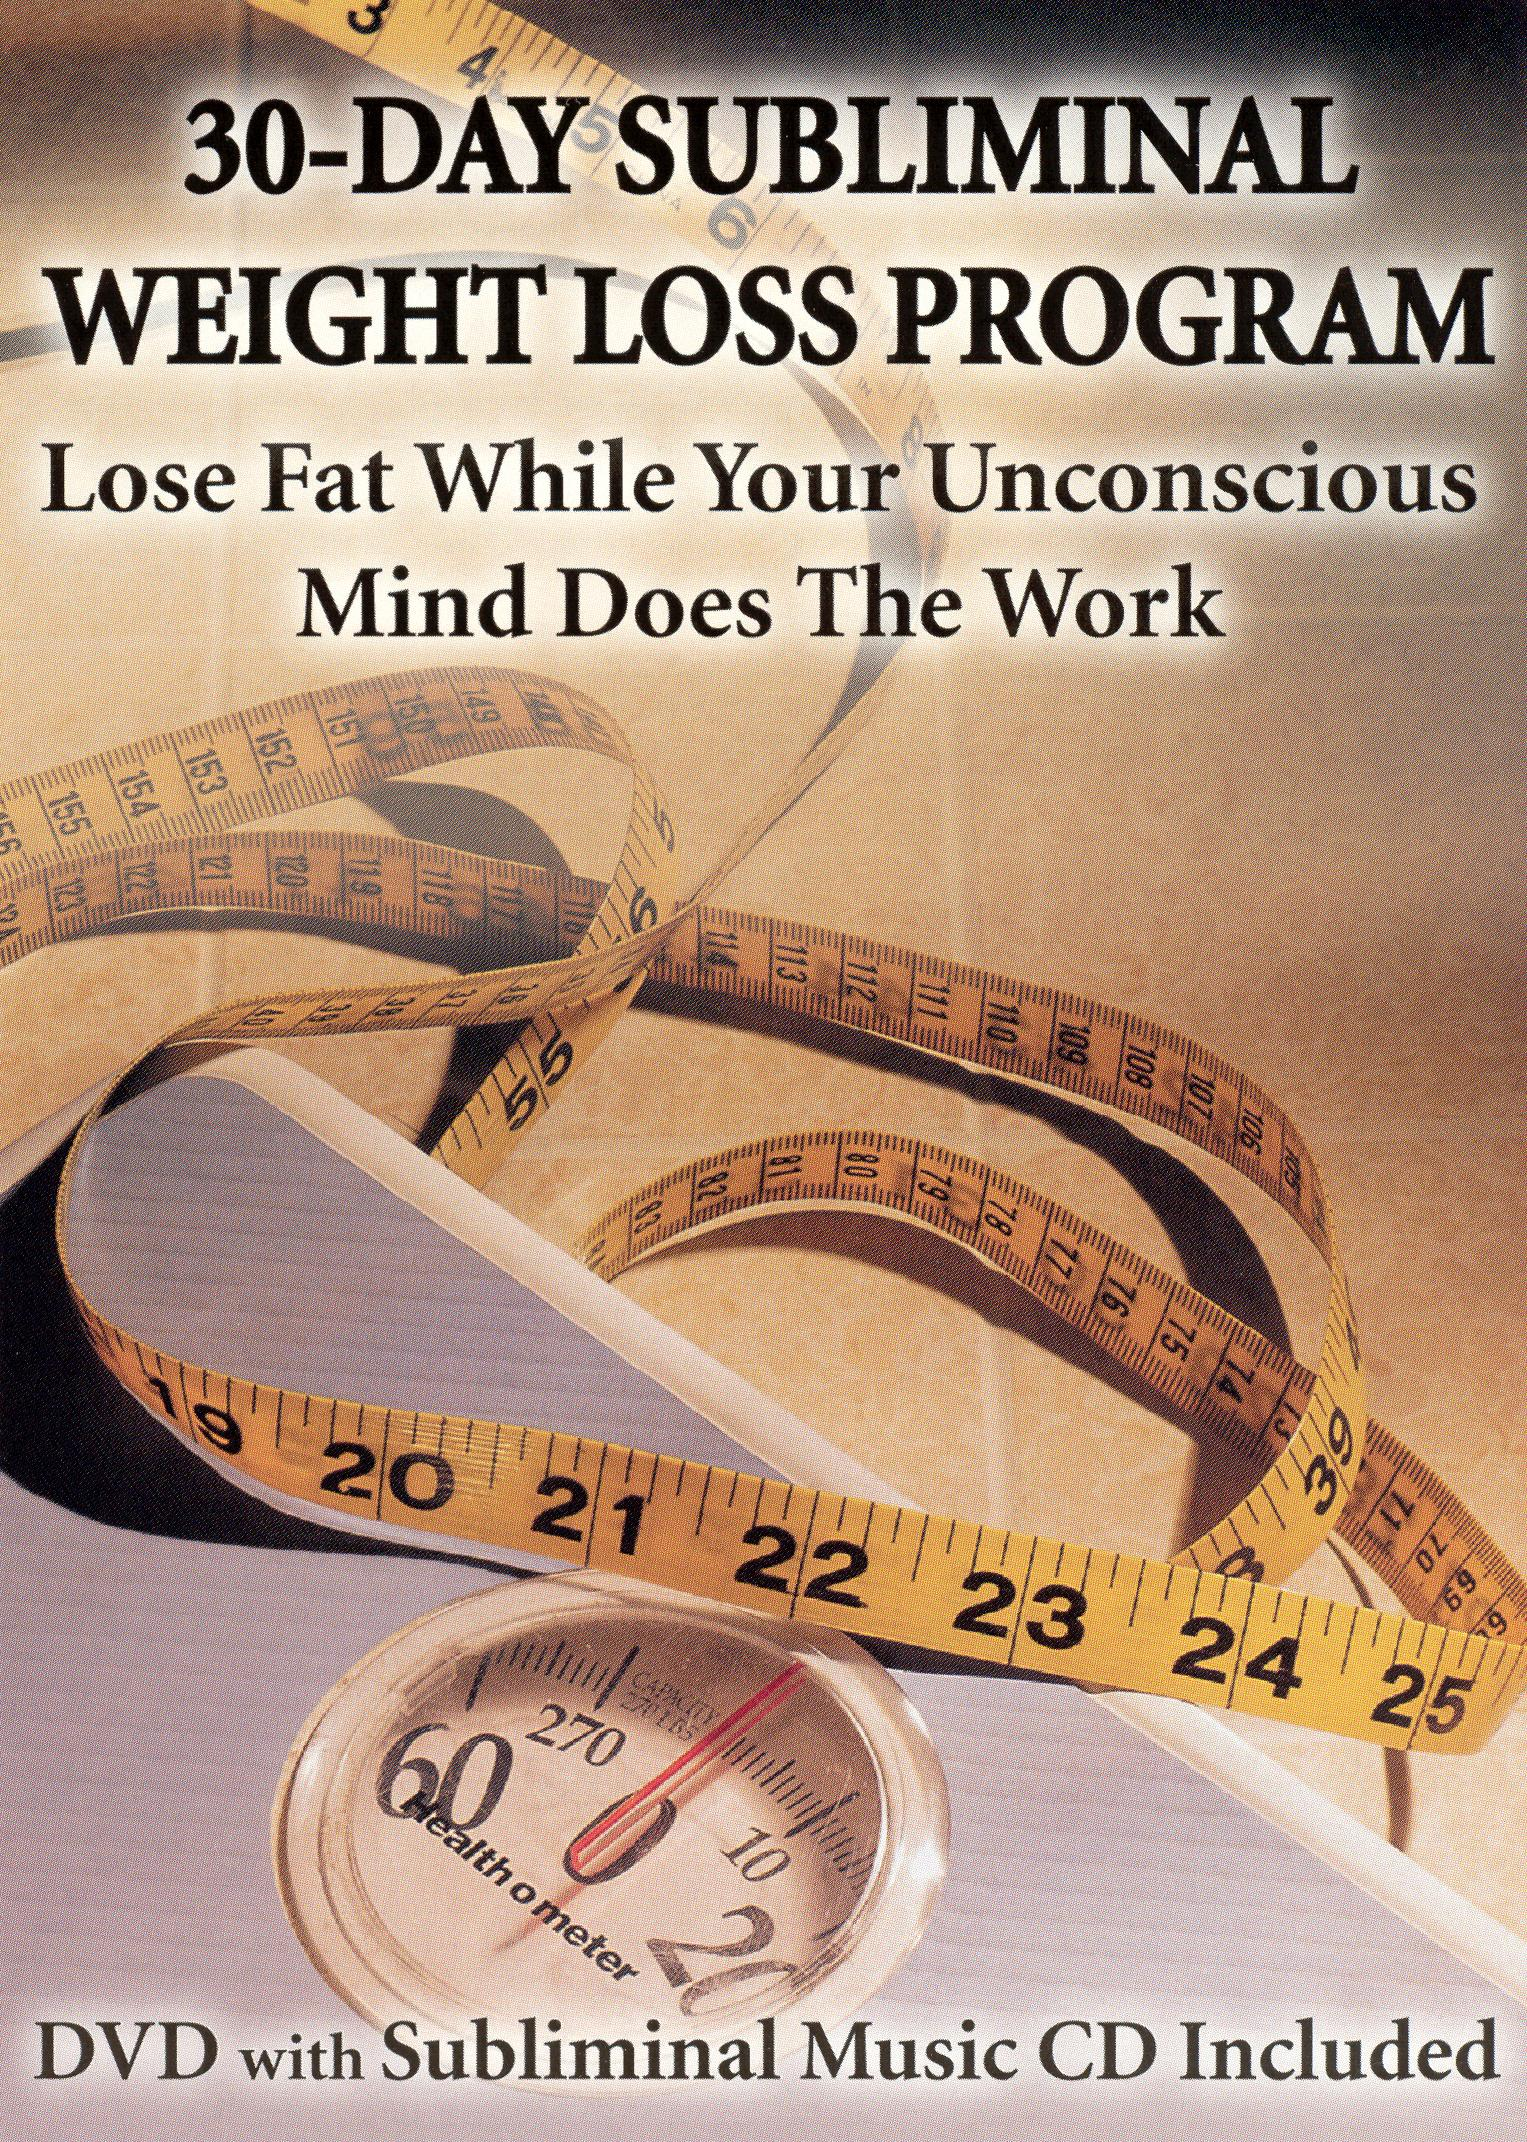 30-Day Subliminal Weight Loss Program